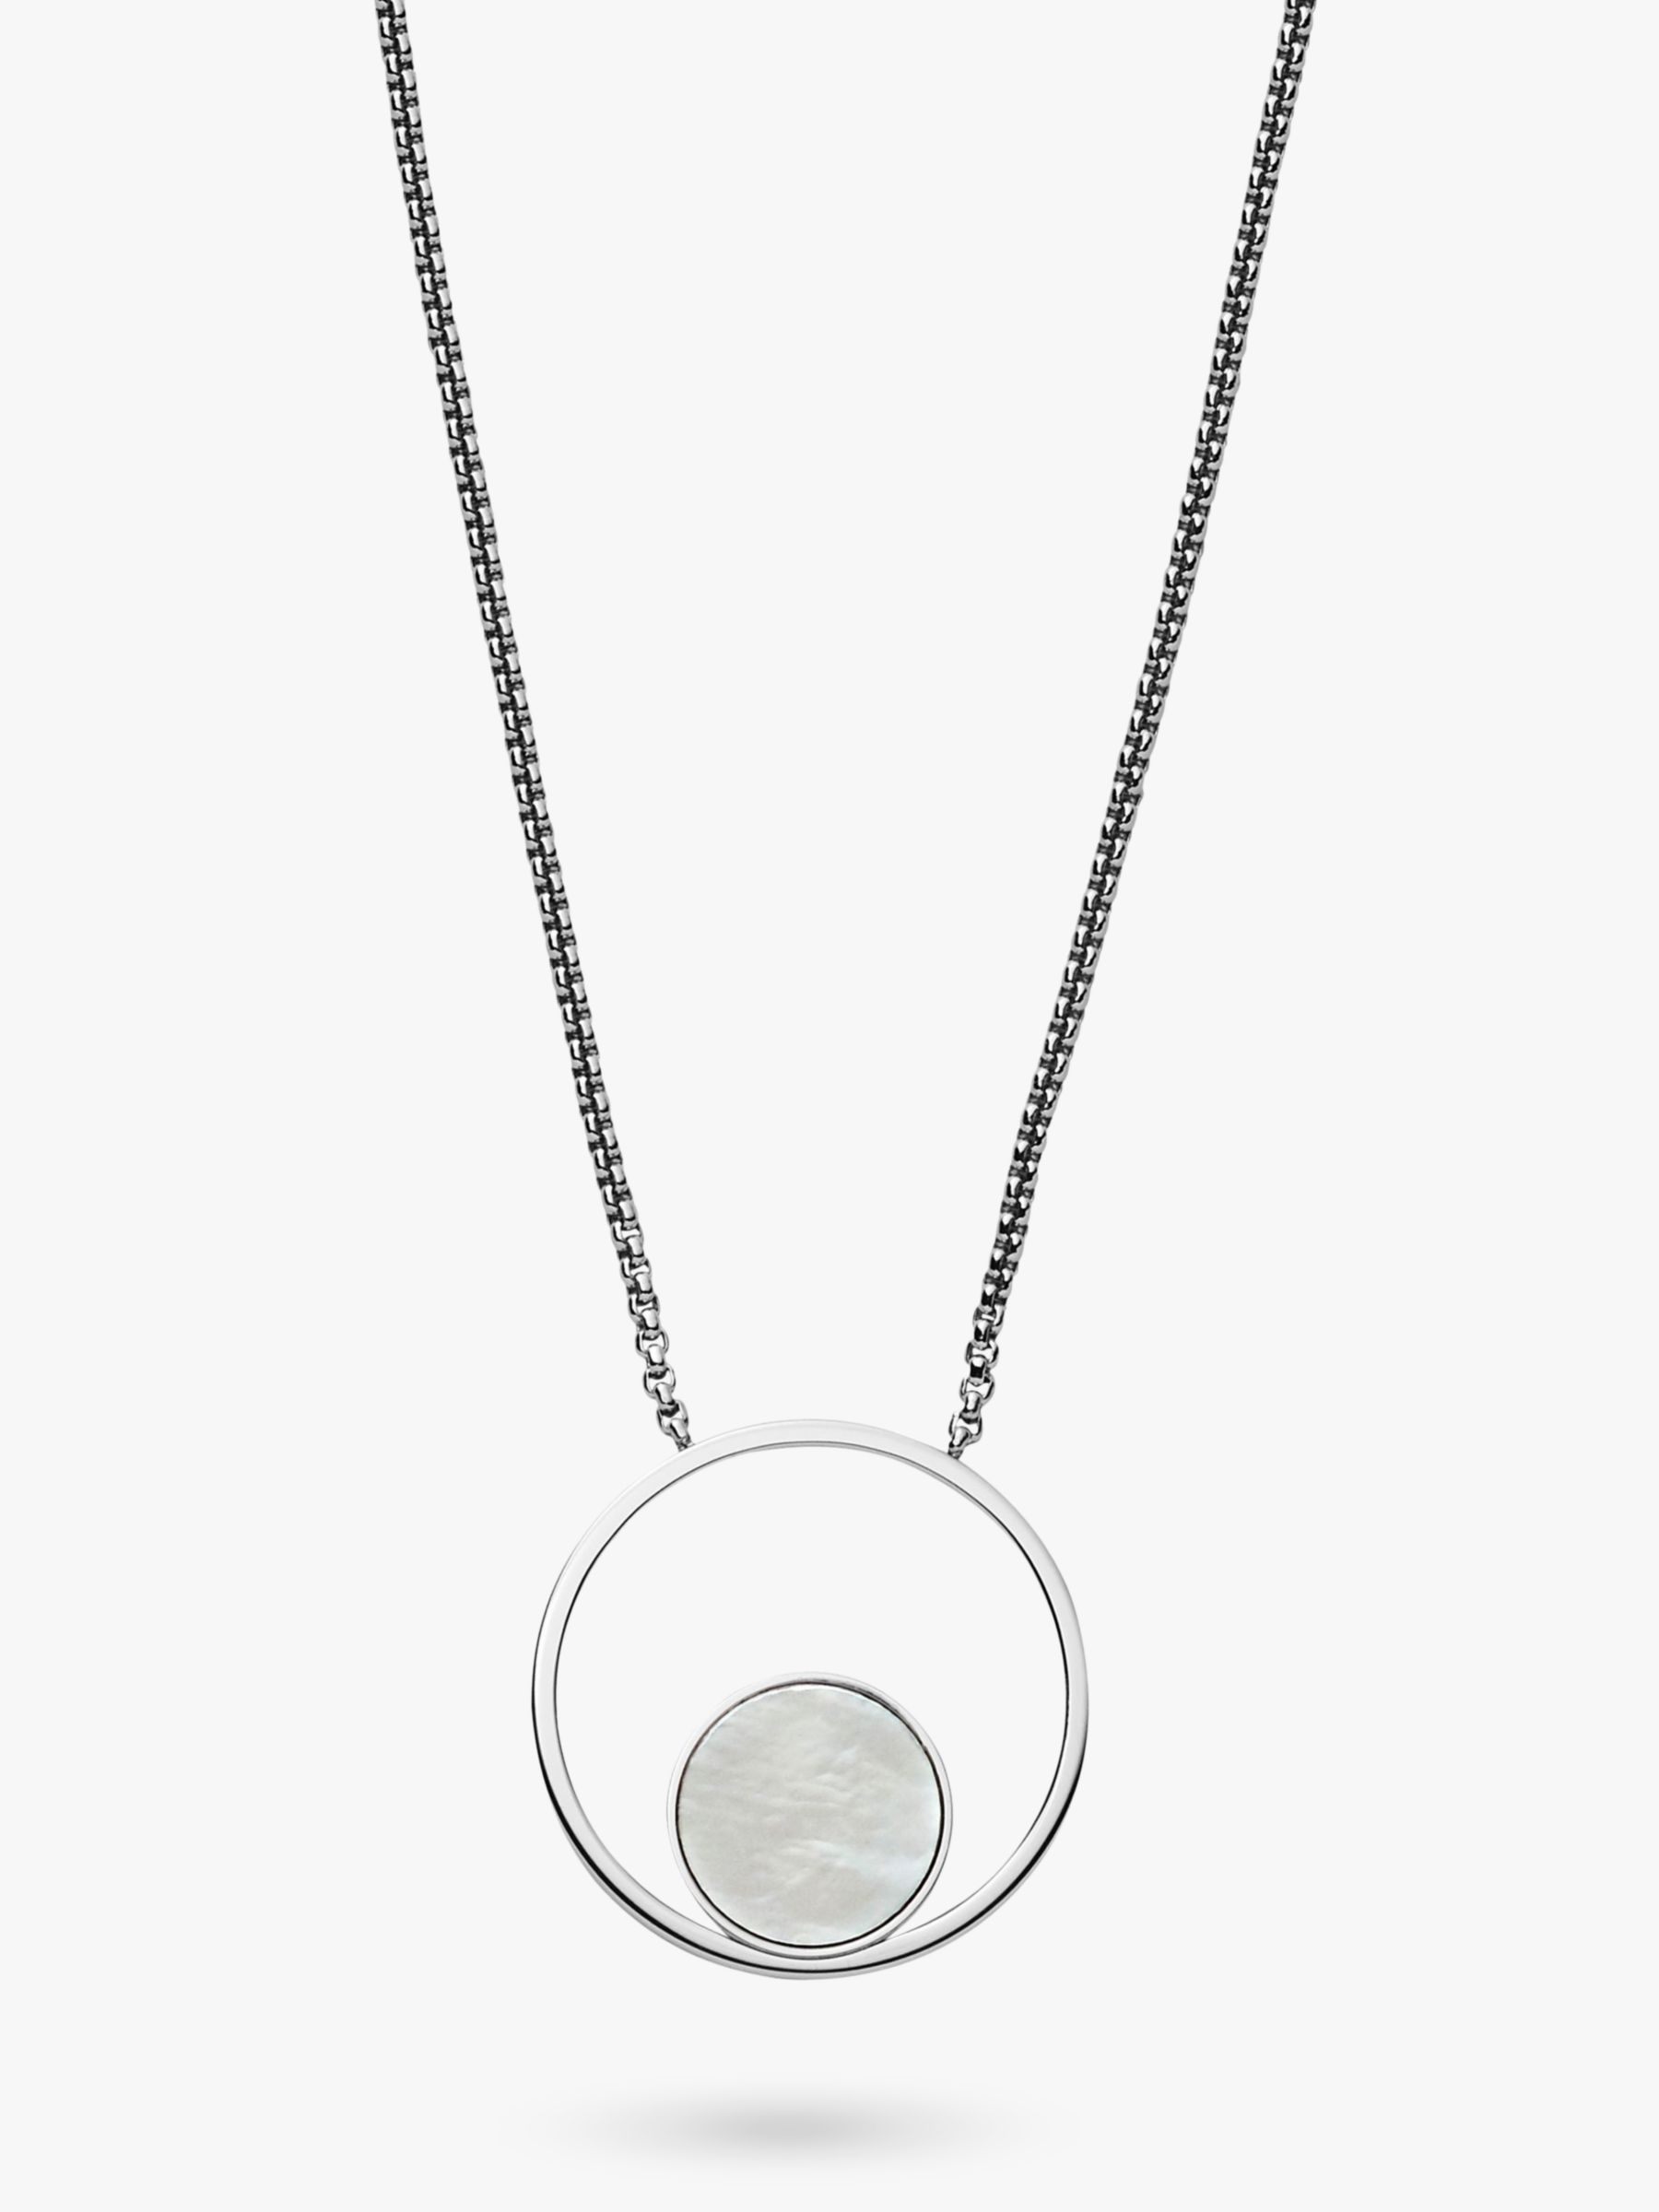 skagen Skagen Agnethe Cut Out Mother of Pearl Round Pendant Necklace, Silver/White SKJ1098040